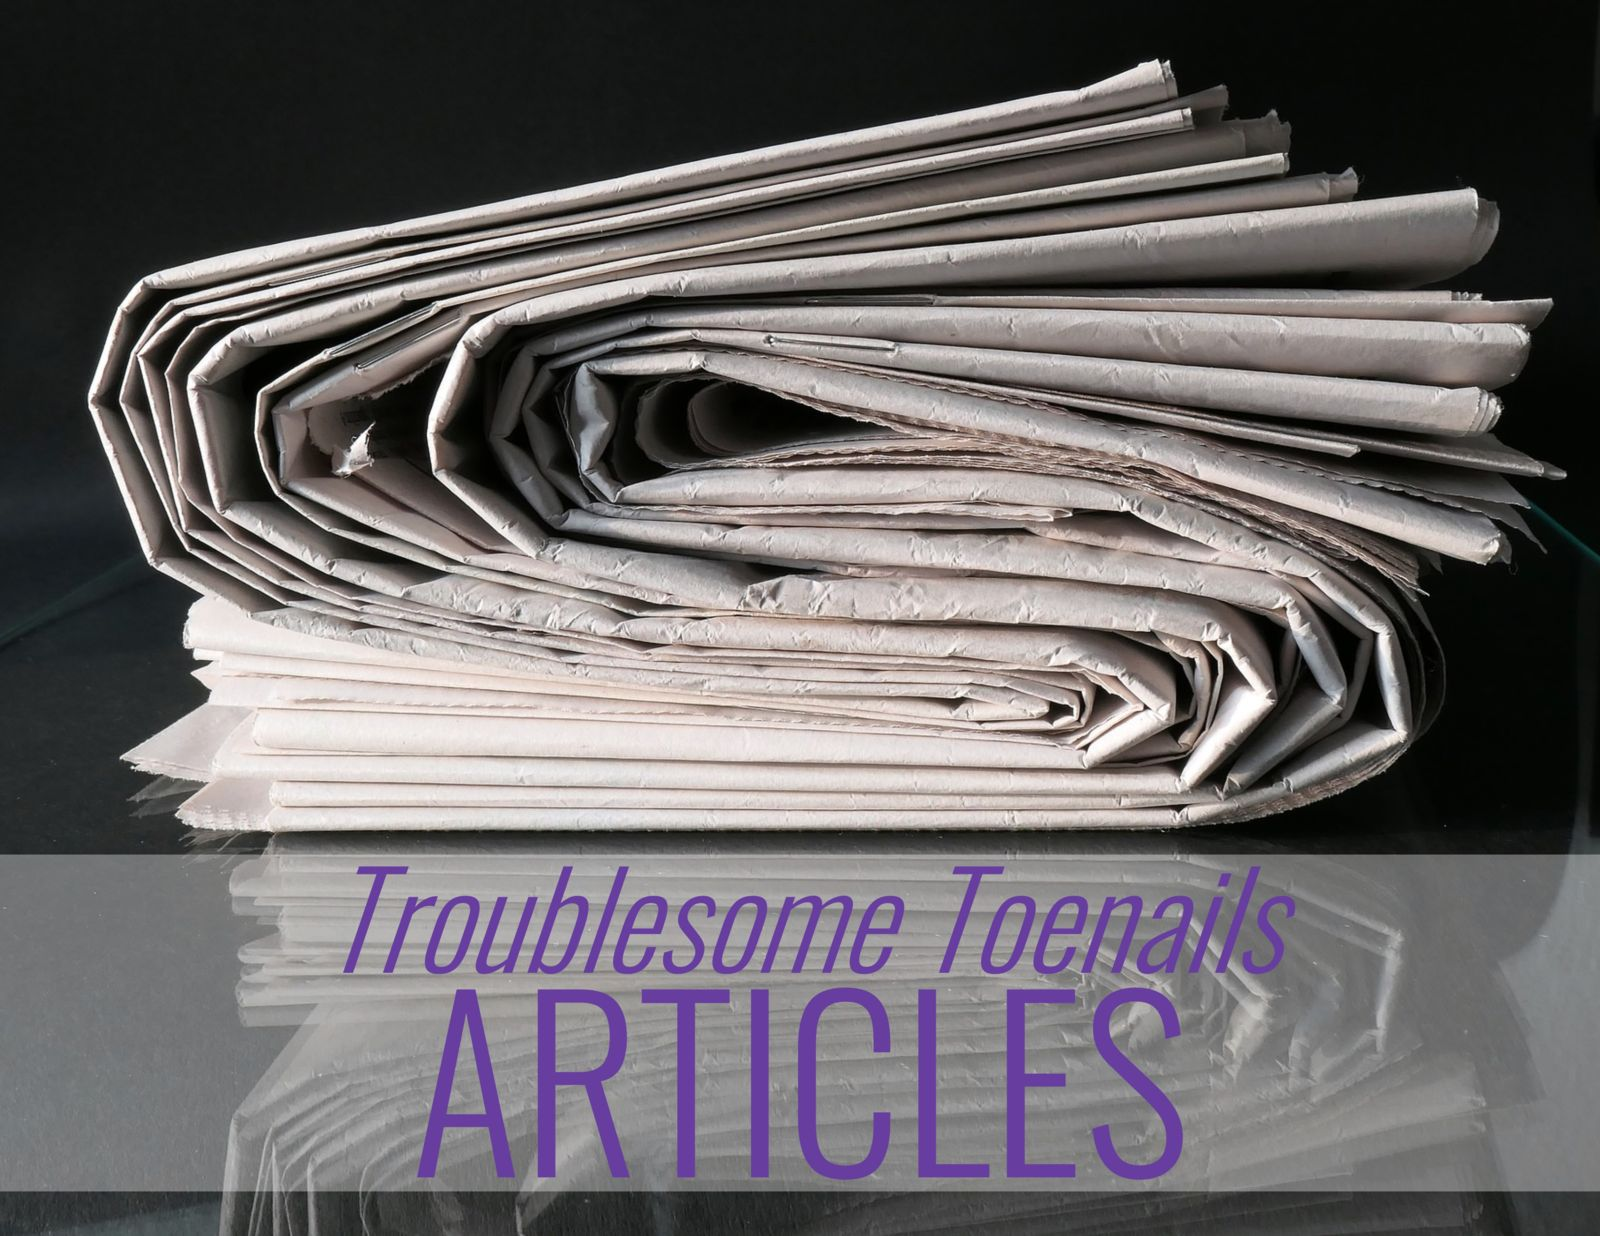 Newspapers and the words: Troublesome Toenails Articles